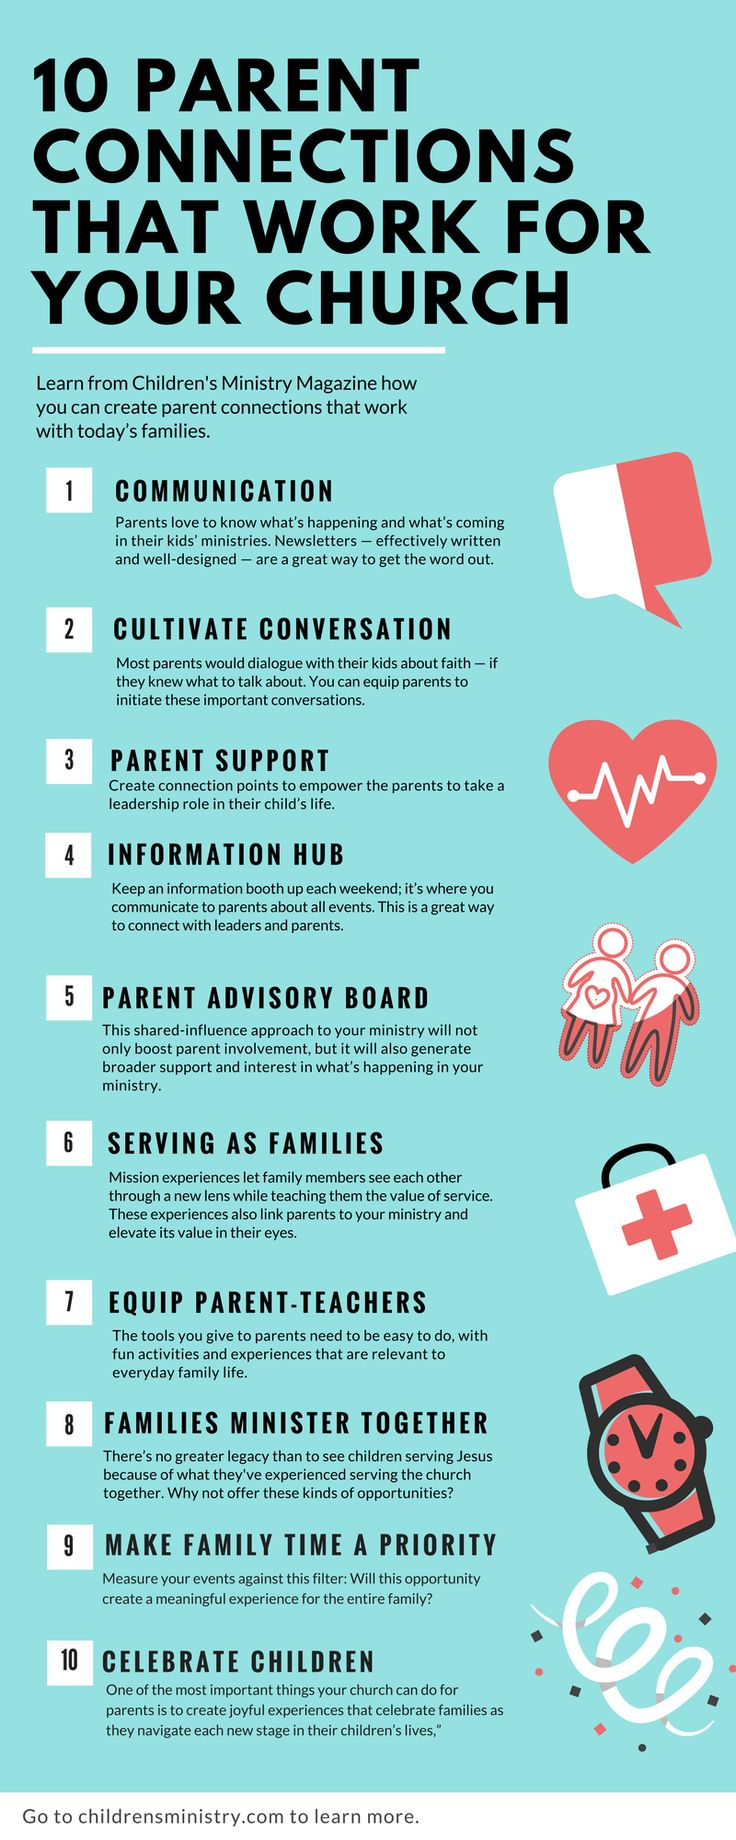 These are effective ways to connect with parents. Churches want parents to commit and get involved. These are powerful ways to do that in your Sunday school and church.